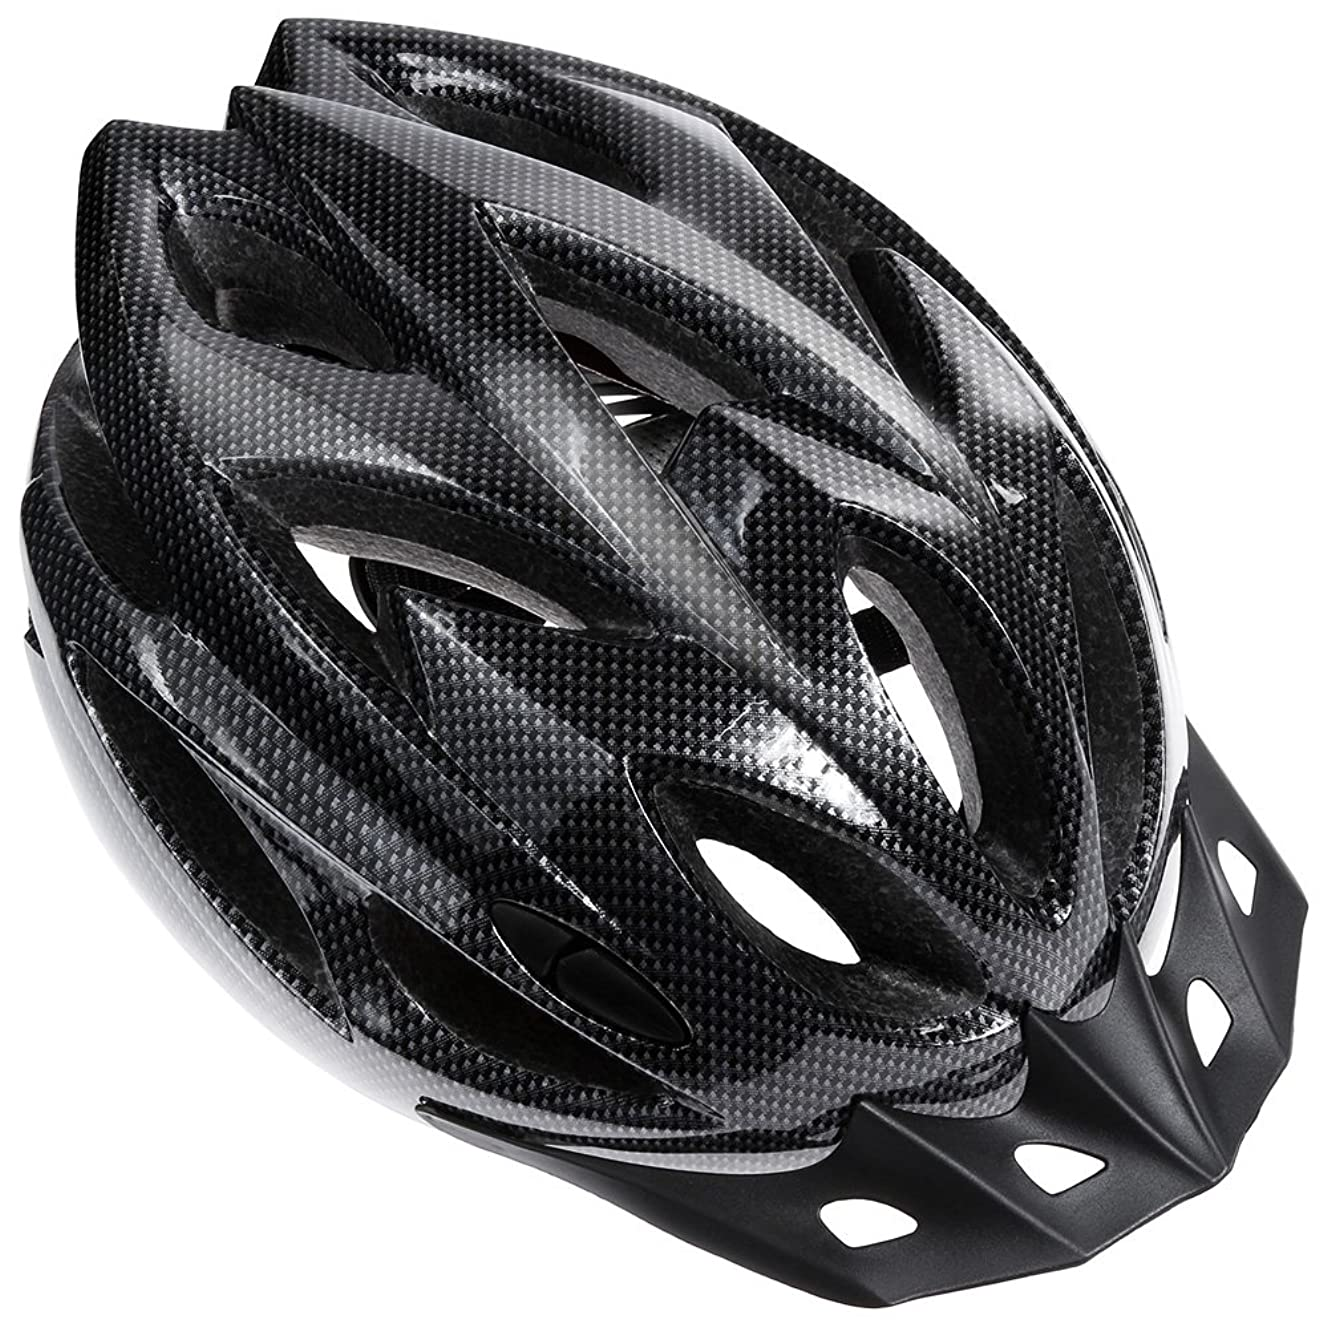 Zacro Lightweight Bike Helmet, CPSC Certified Cycle Helmet Adjustable Thrasher for Adult with Detachable Liner with Water and Dust Resistant Bike Seat Cover